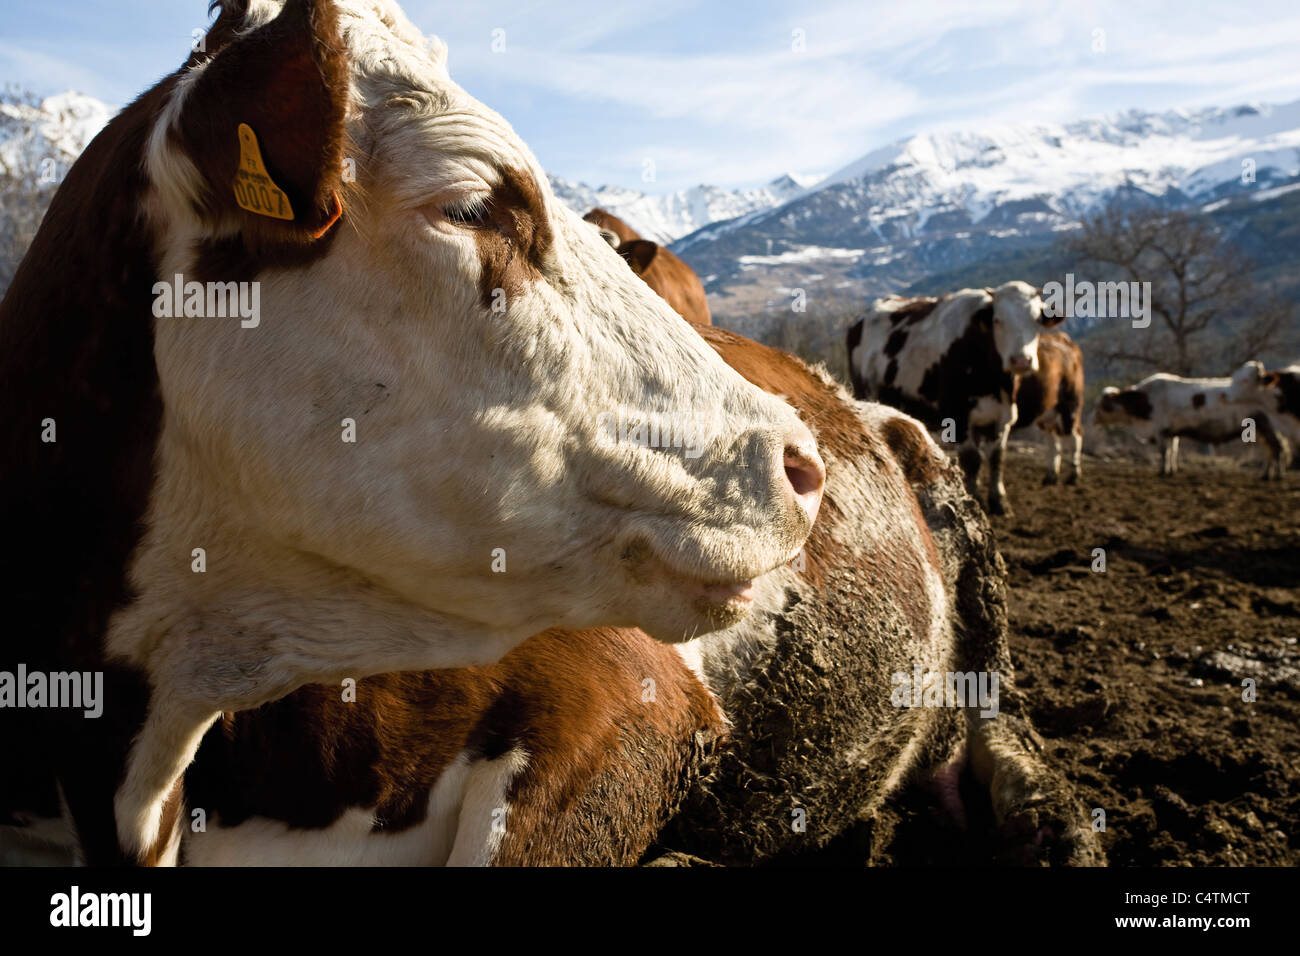 Cow looking away - Stock Image